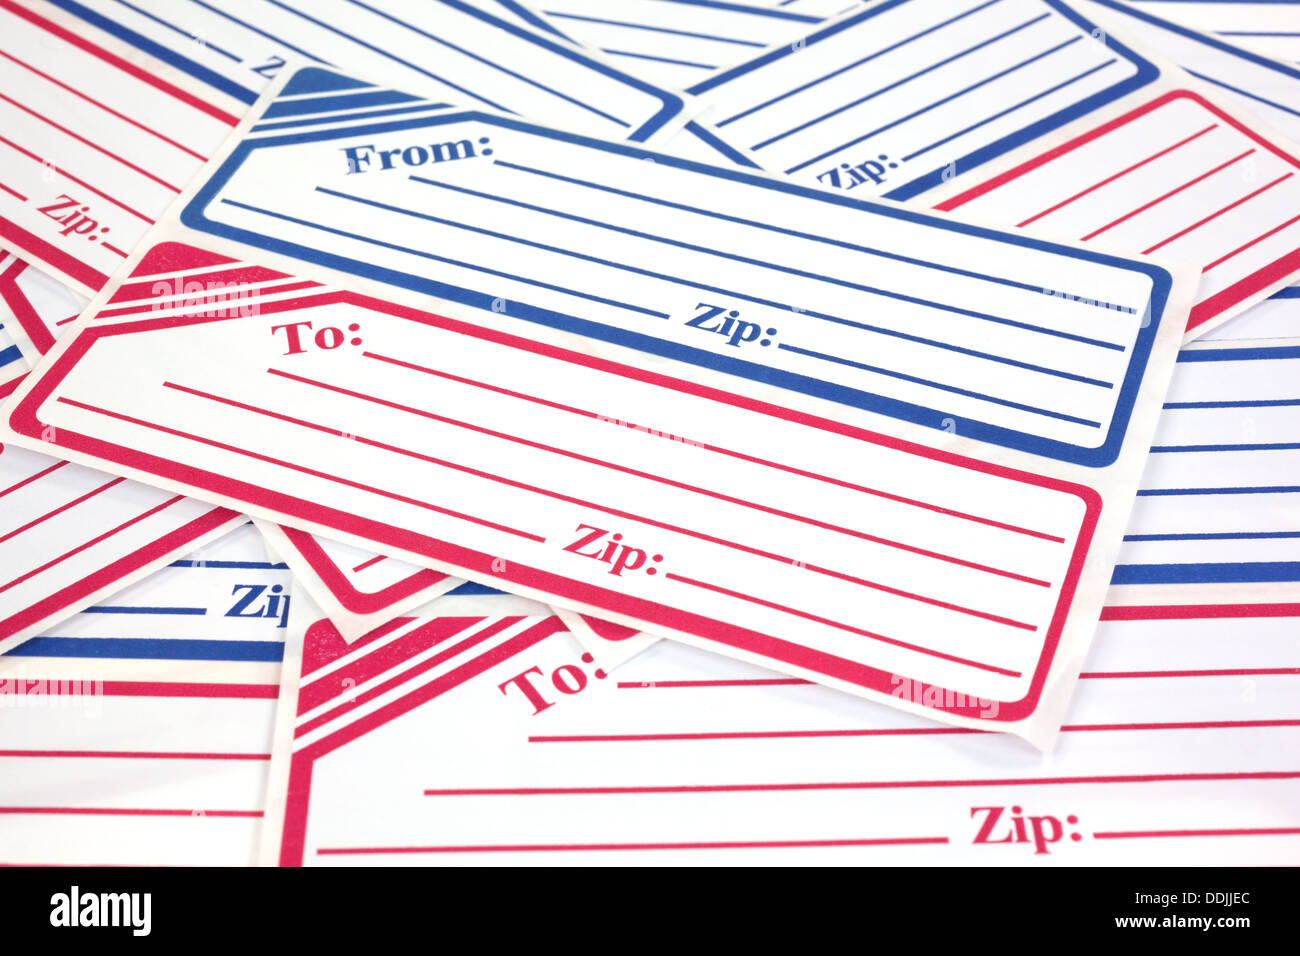 Close view of several generic mailing labels Stock Photo